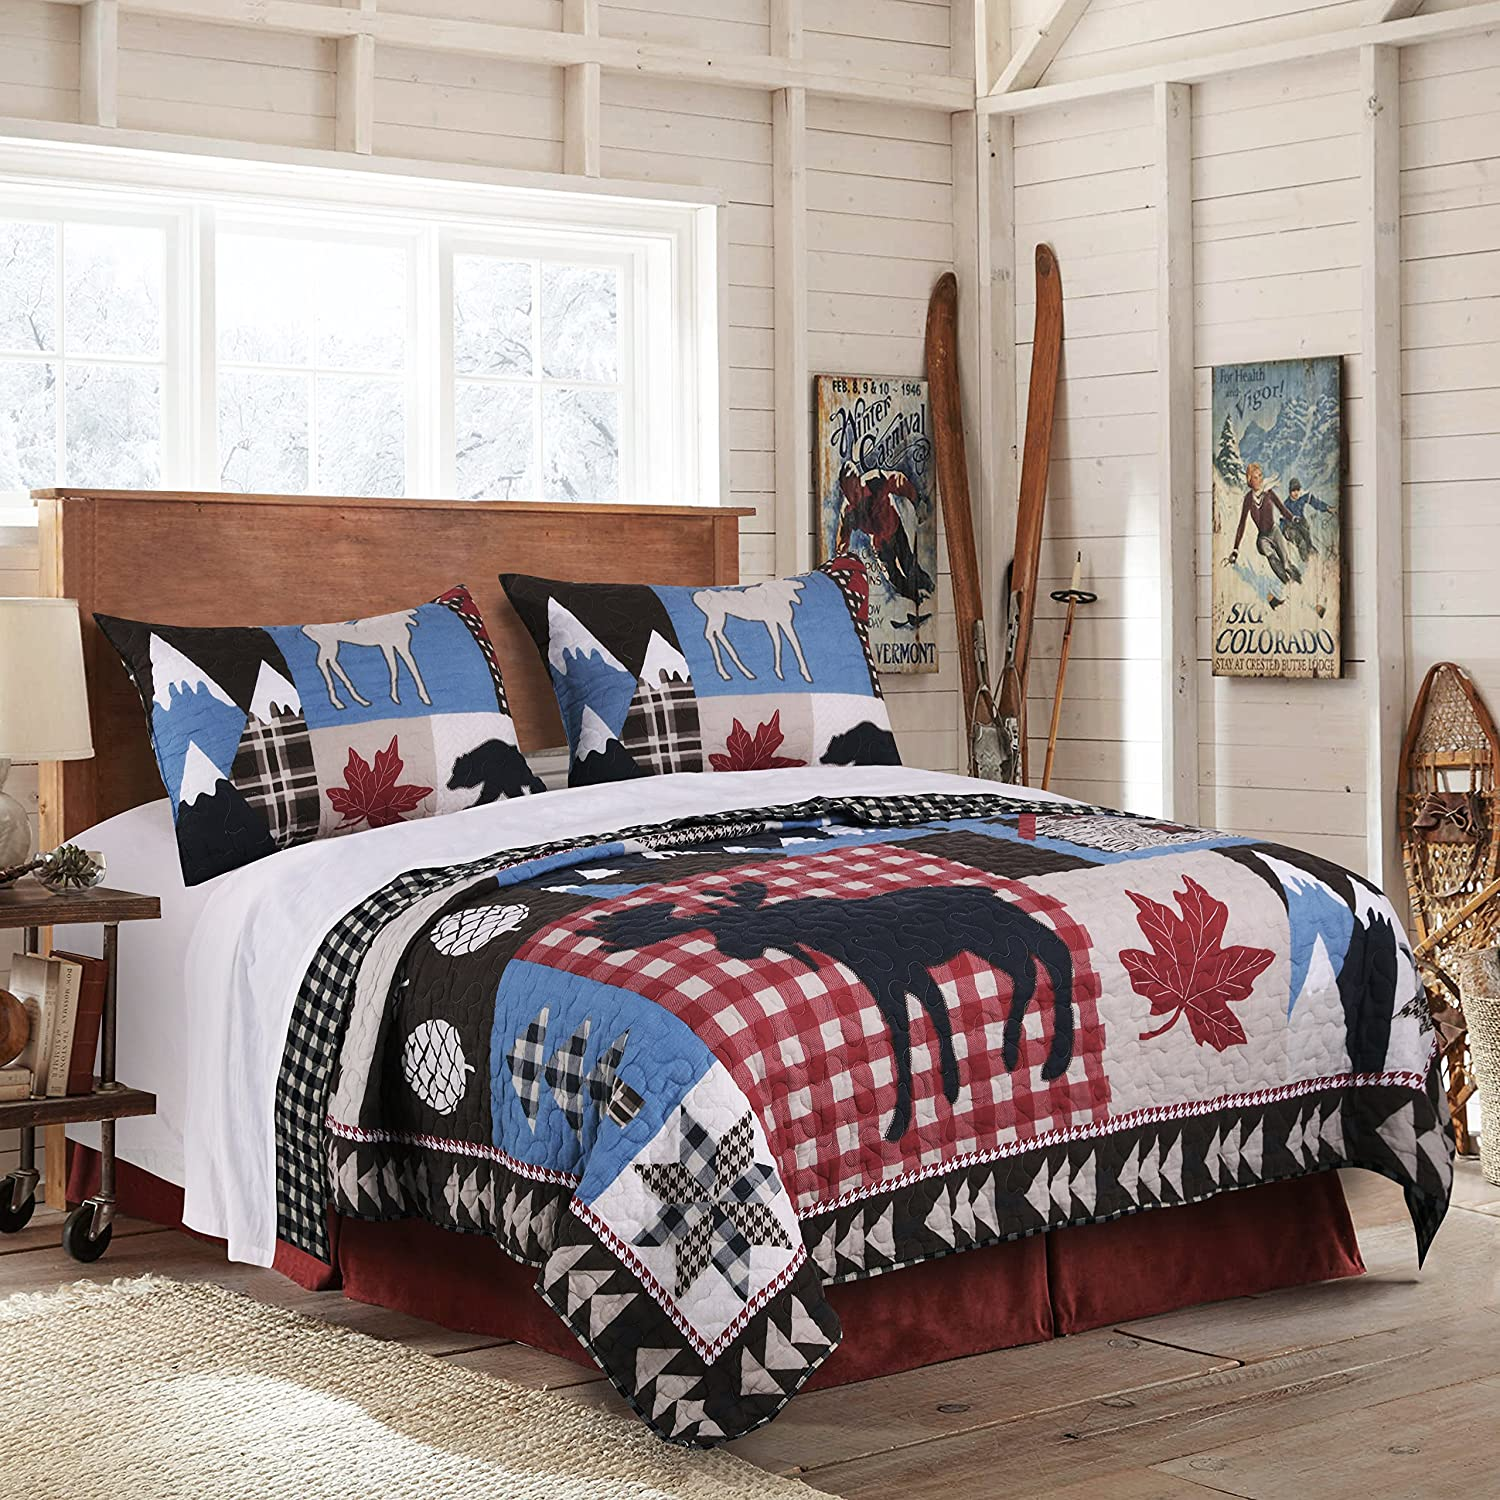 Greenland Home Mountain Trail Quilt Set, 3-Piece, King Greenland Home Fashions GL-1706AMSK